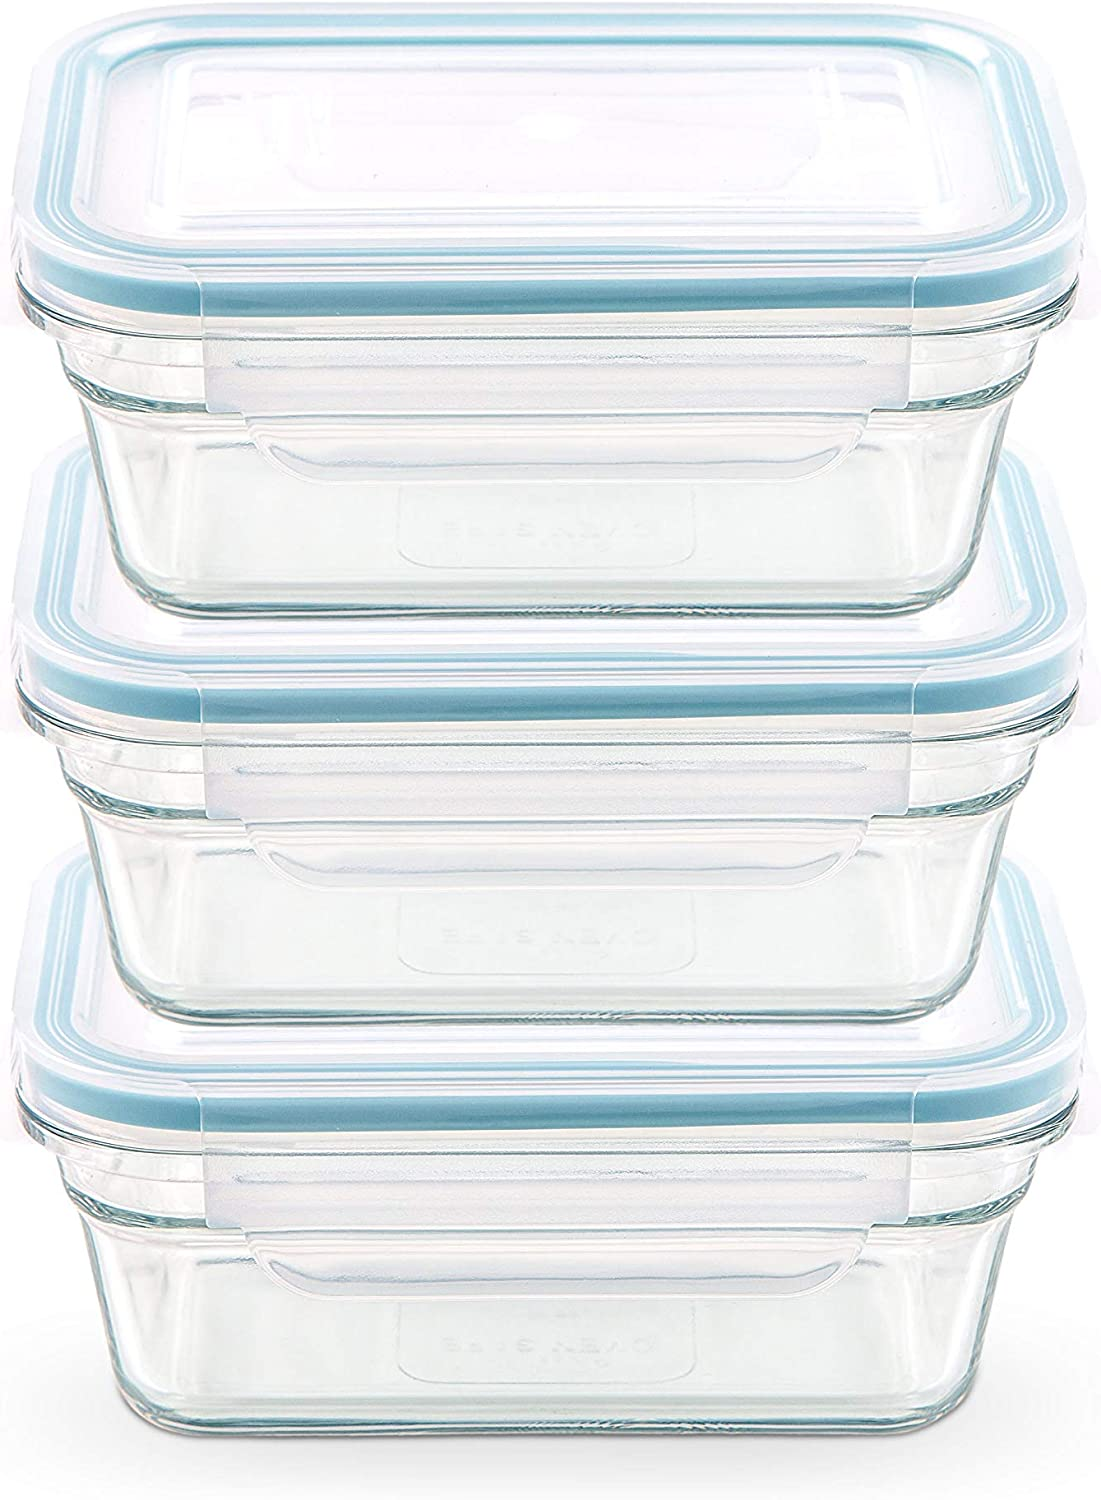 Snaplock Lid Tempered Glasslock Storage Rectangular Container Airtight 3 Container Set Anti Spill Microwave & Oven Safe 1.6cups/378ml